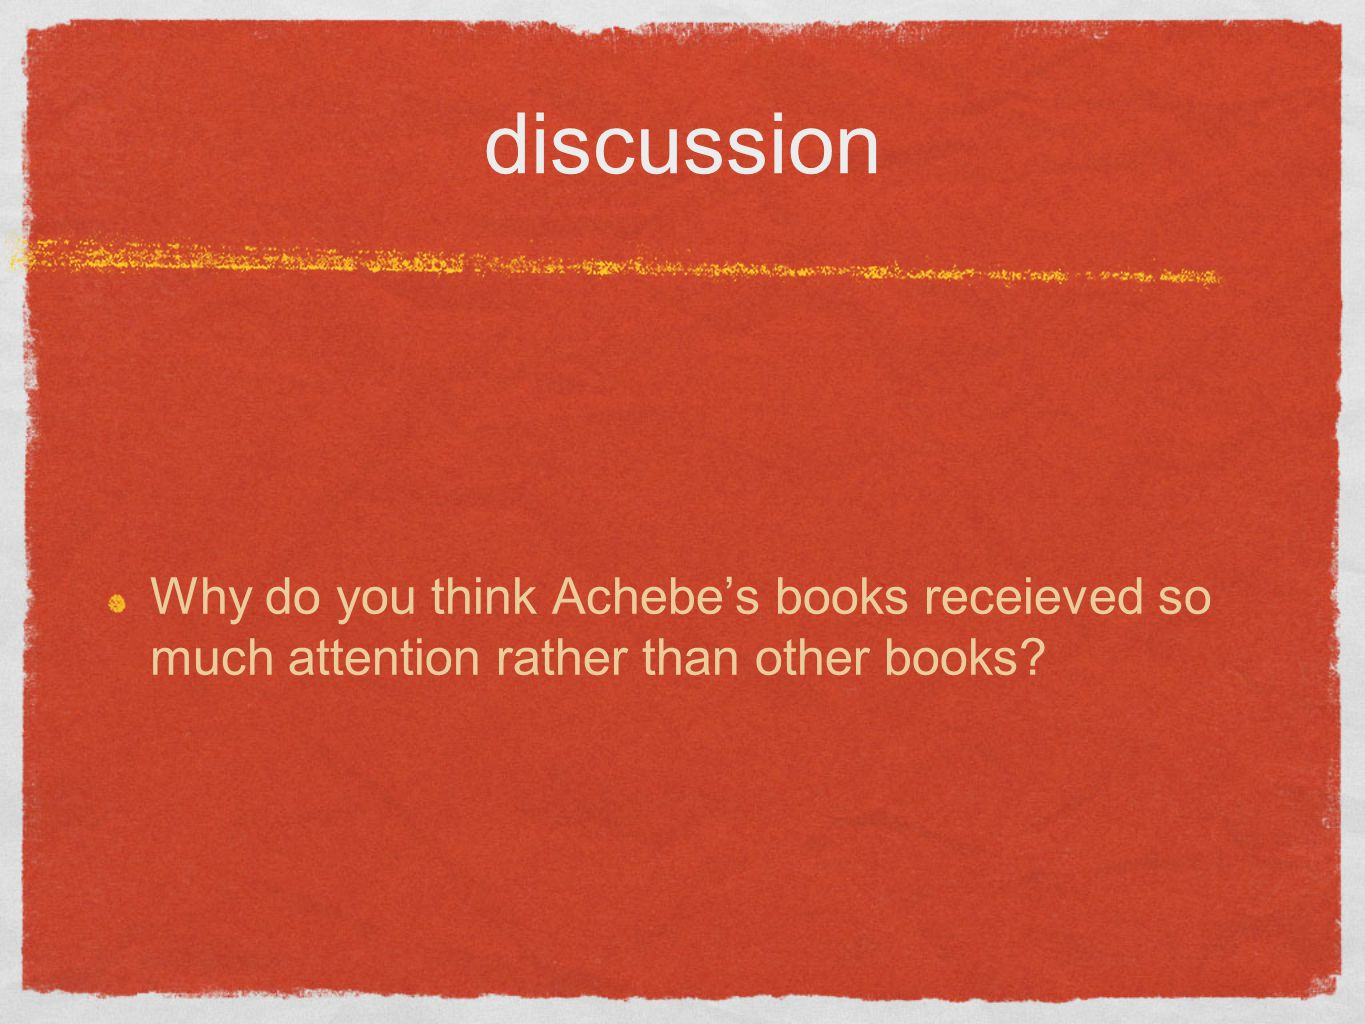 discussion Why do you think Achebe's books receieved so much attention rather than other books